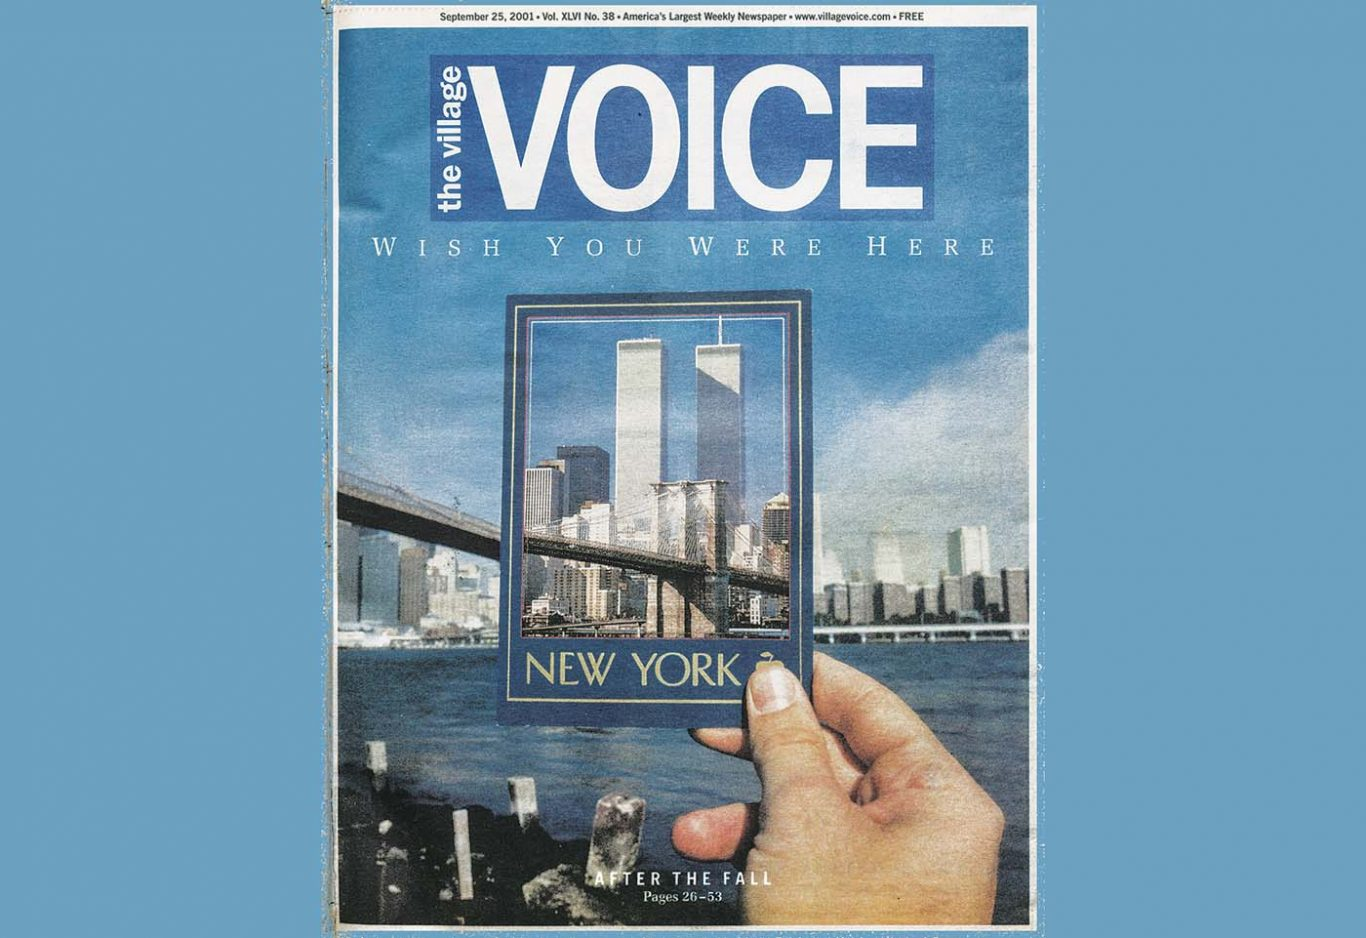 Alisa Solomon wrote an eye-witness account of the 9/11 attacks for the Village Voice